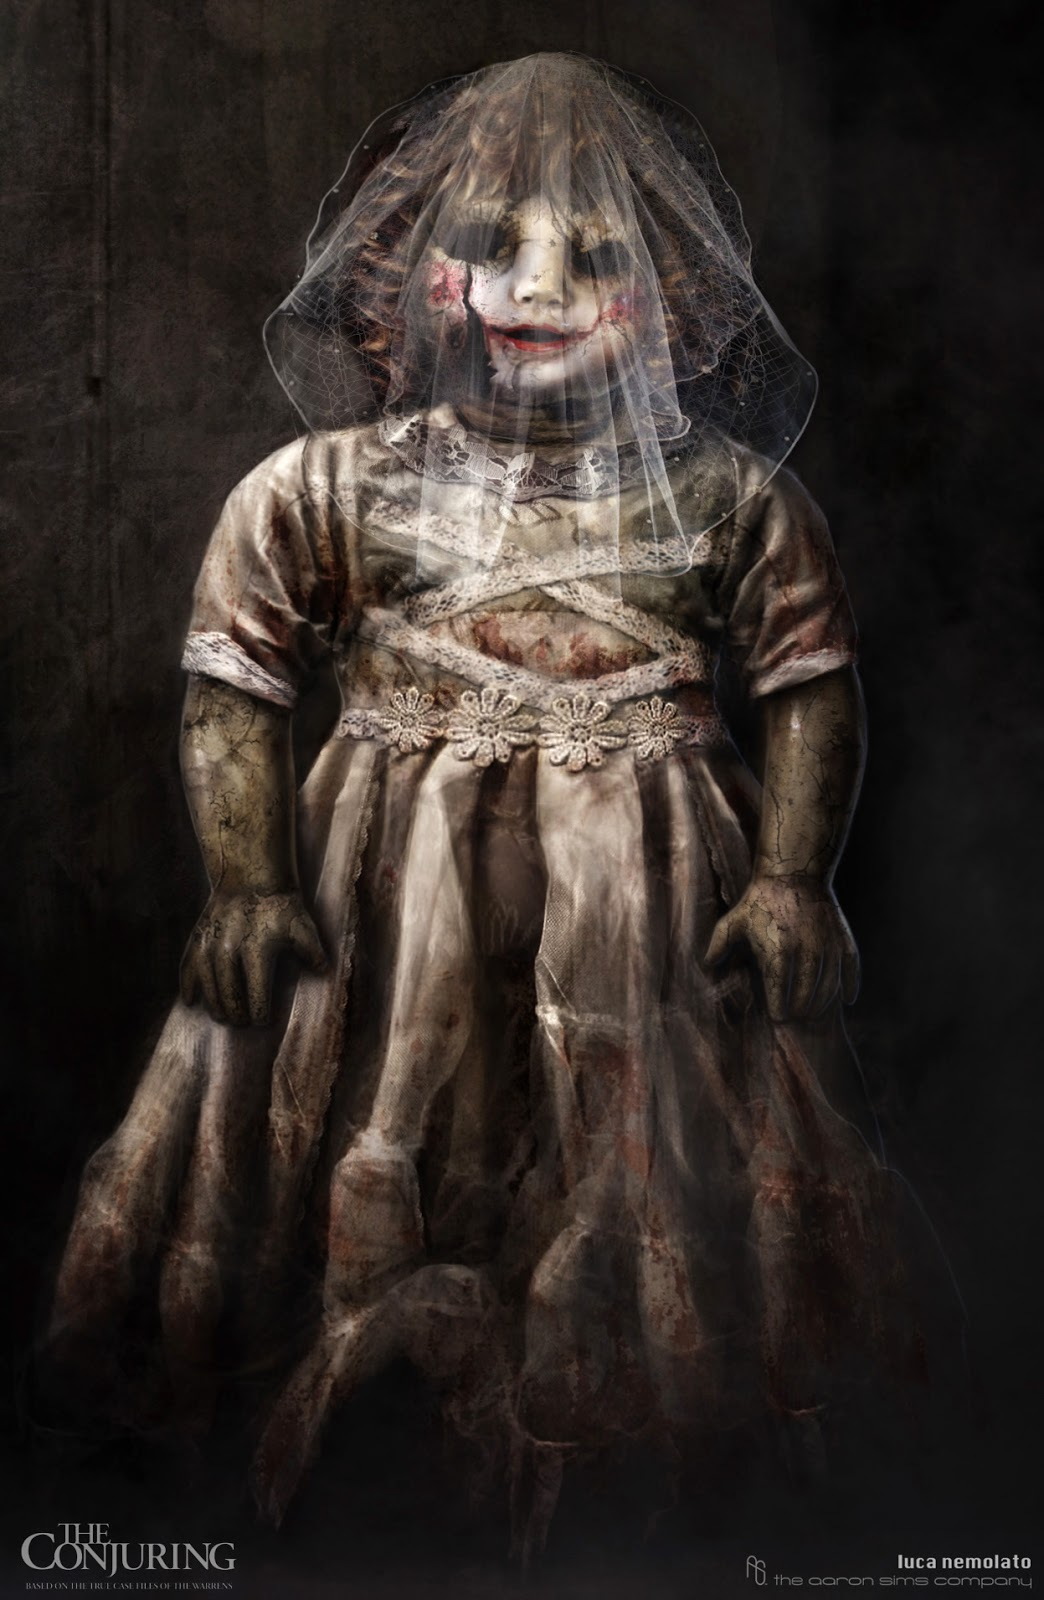 The Conjuring Alternate Designs For Annabelle The Doll